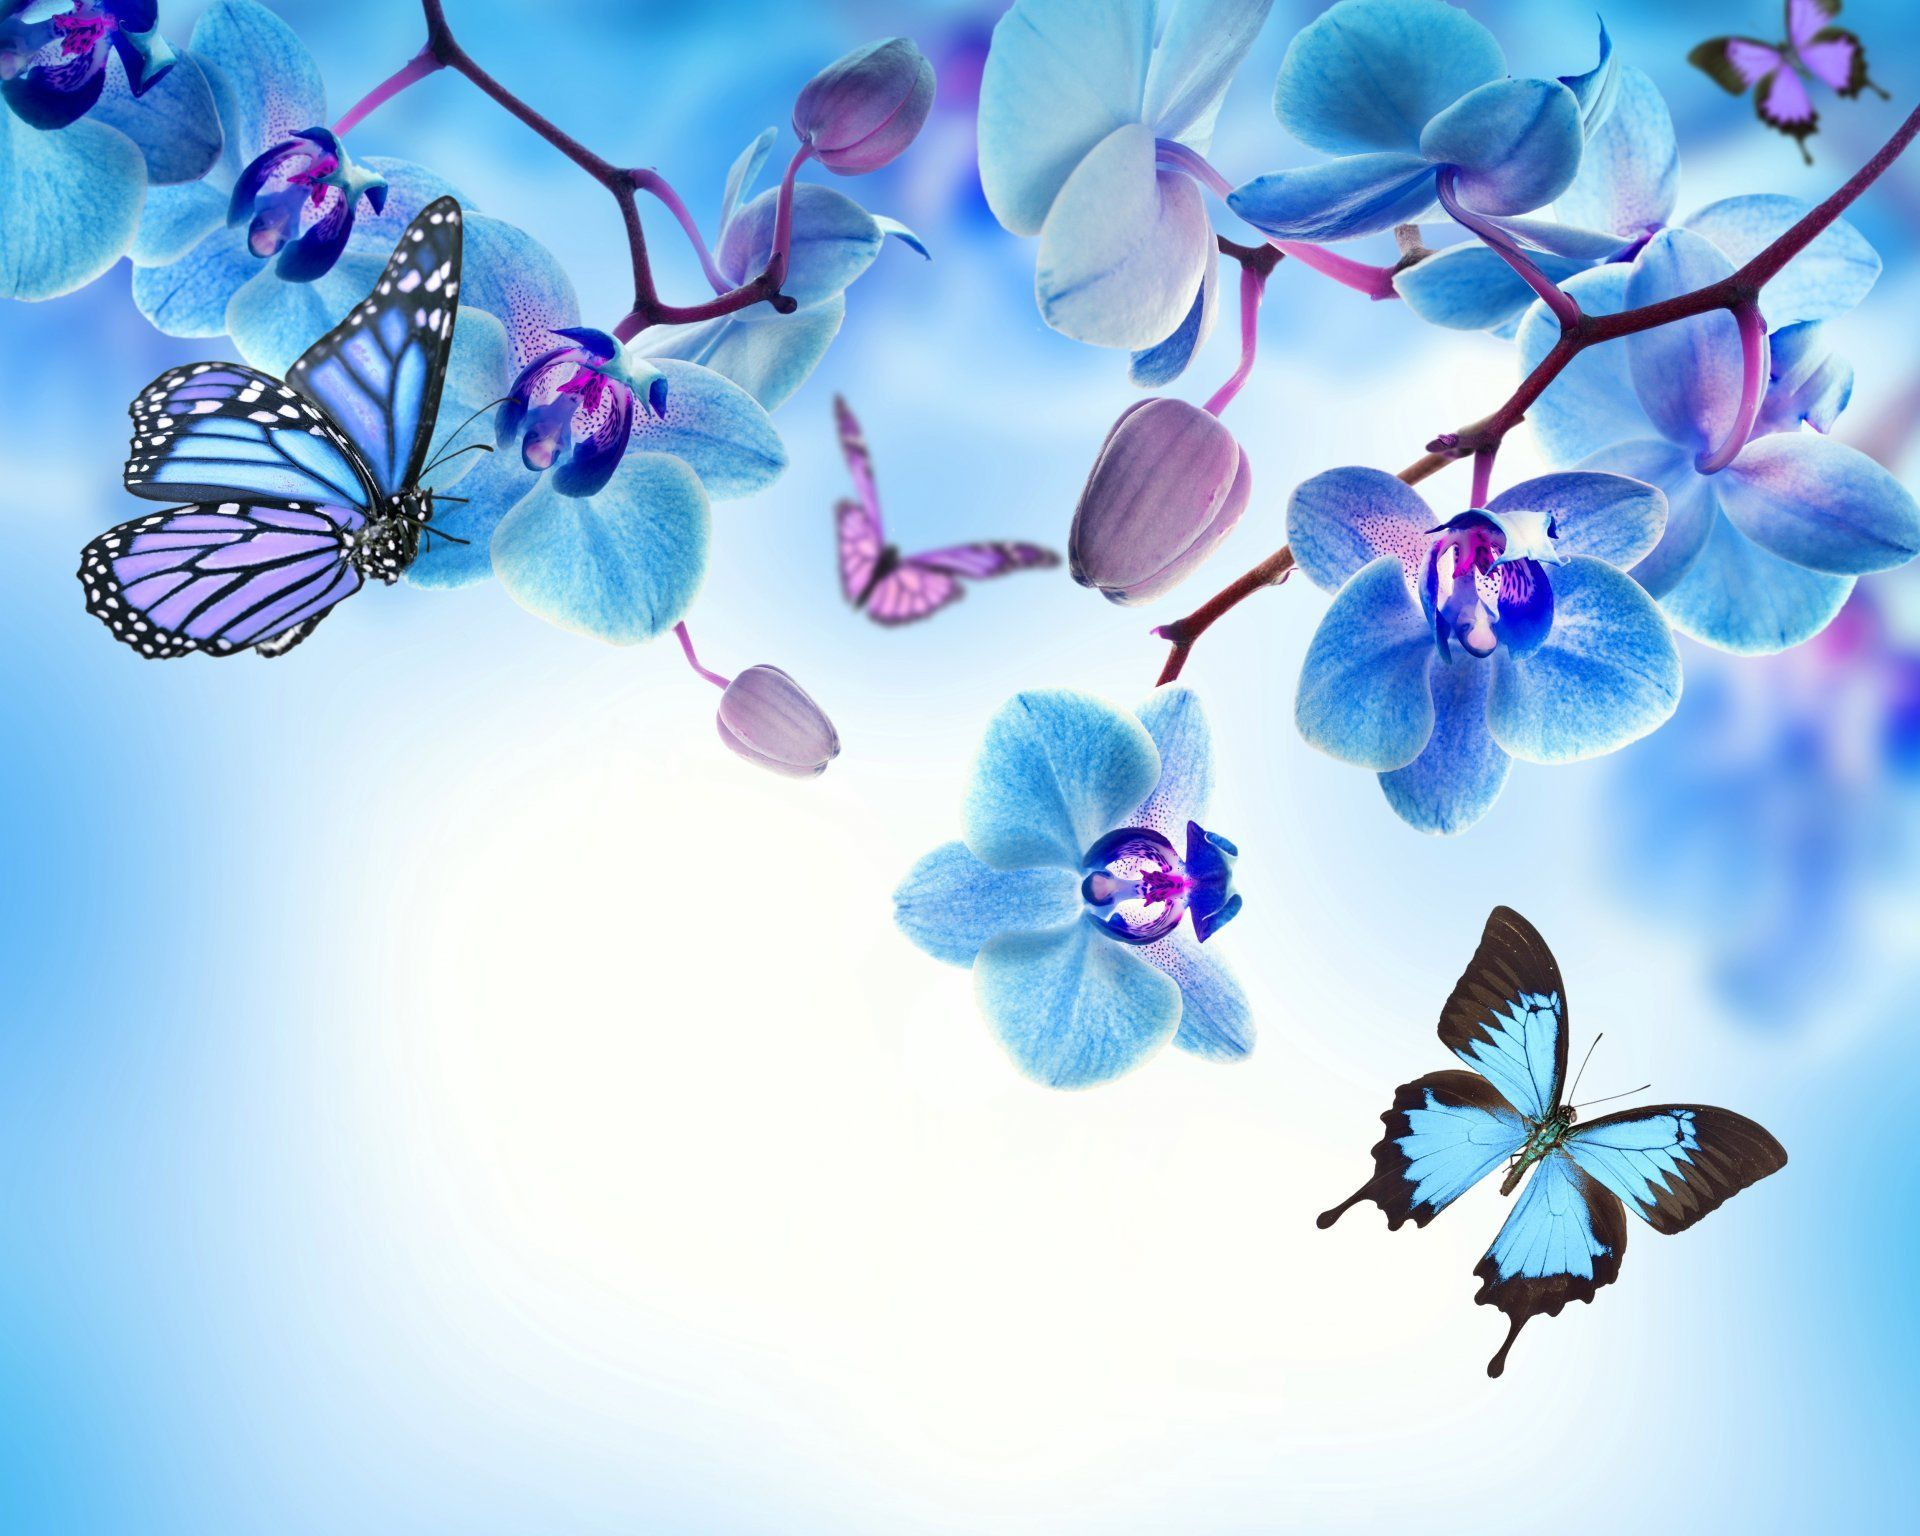 Butterfly And Flower Wall Stickers Orchid Blue Flowers Beautiful Butterflies Orchid Flower